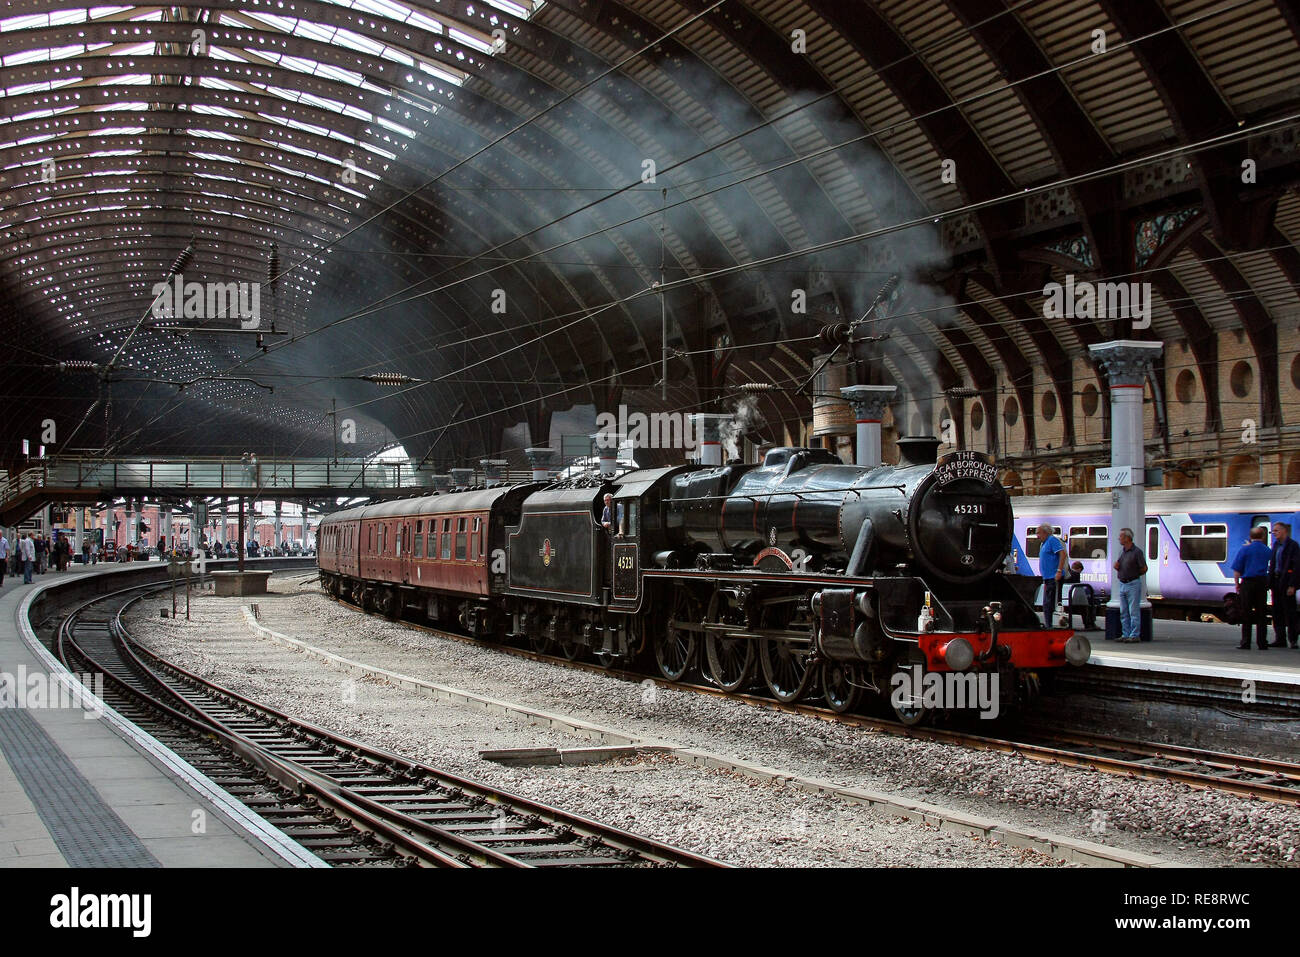 45231 waits at York with the Scarborough Spa Express. - Stock Image